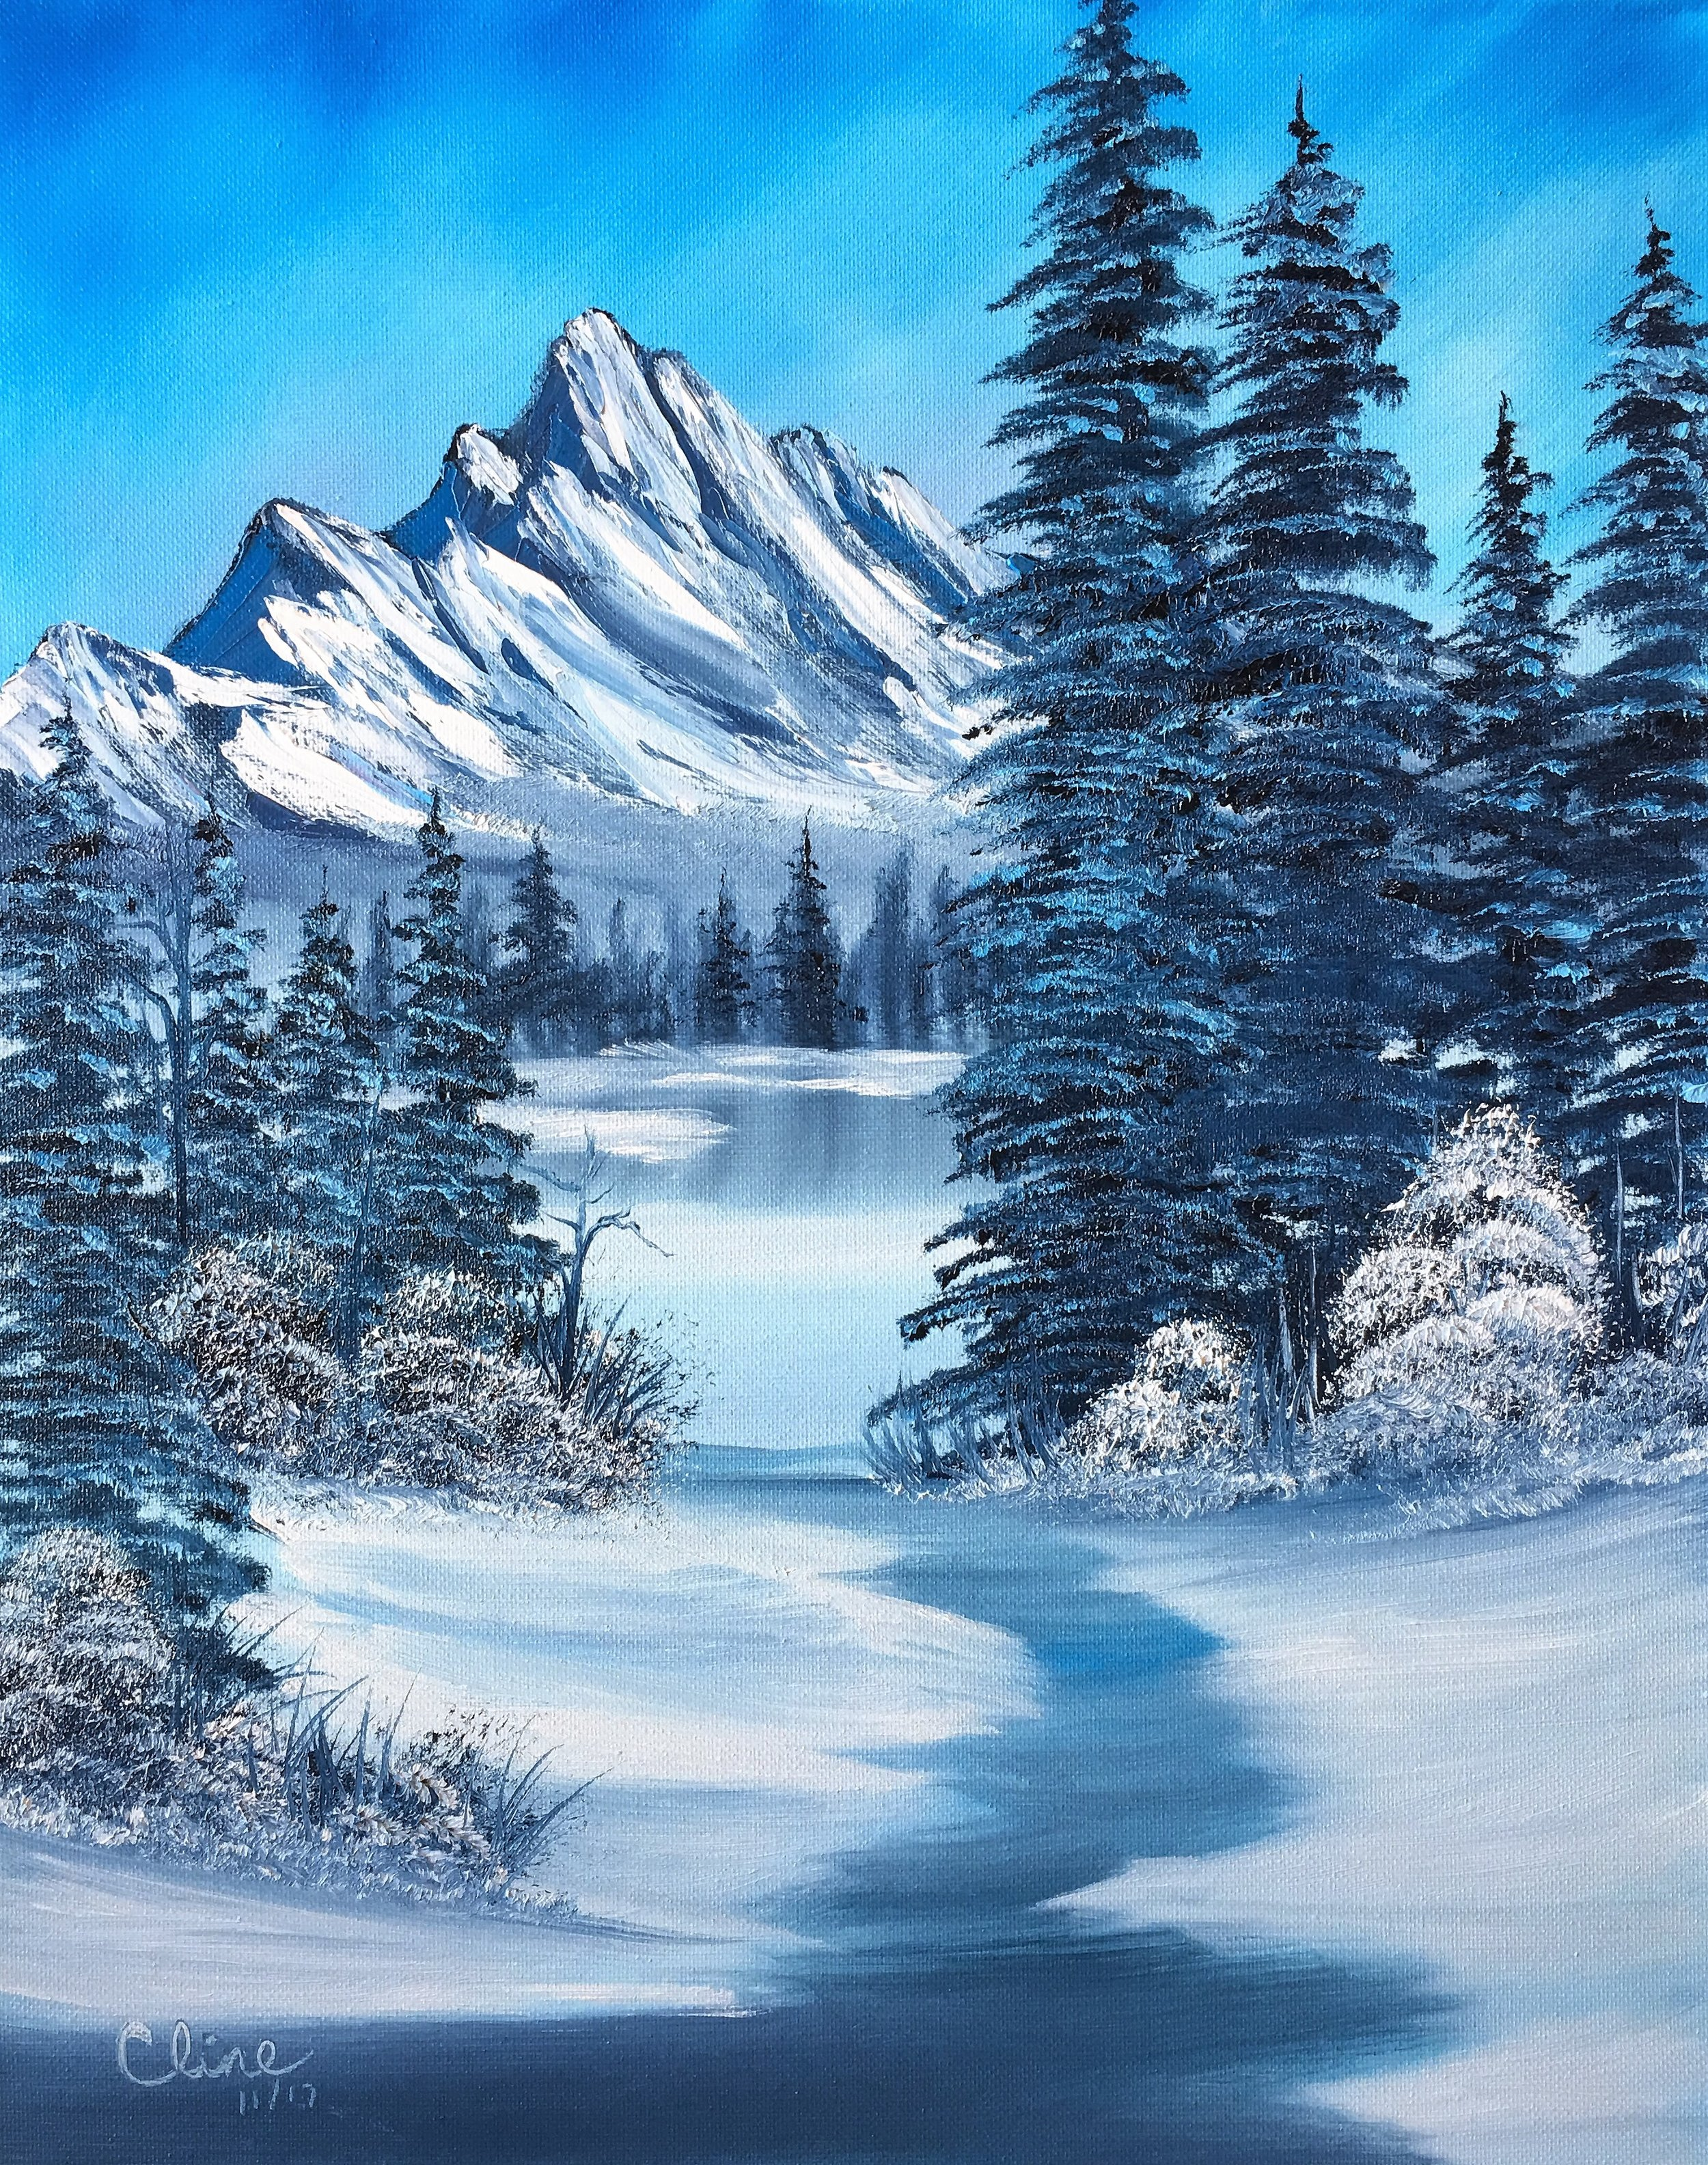 Winter Mountain 1213 with changes16x20.JPG